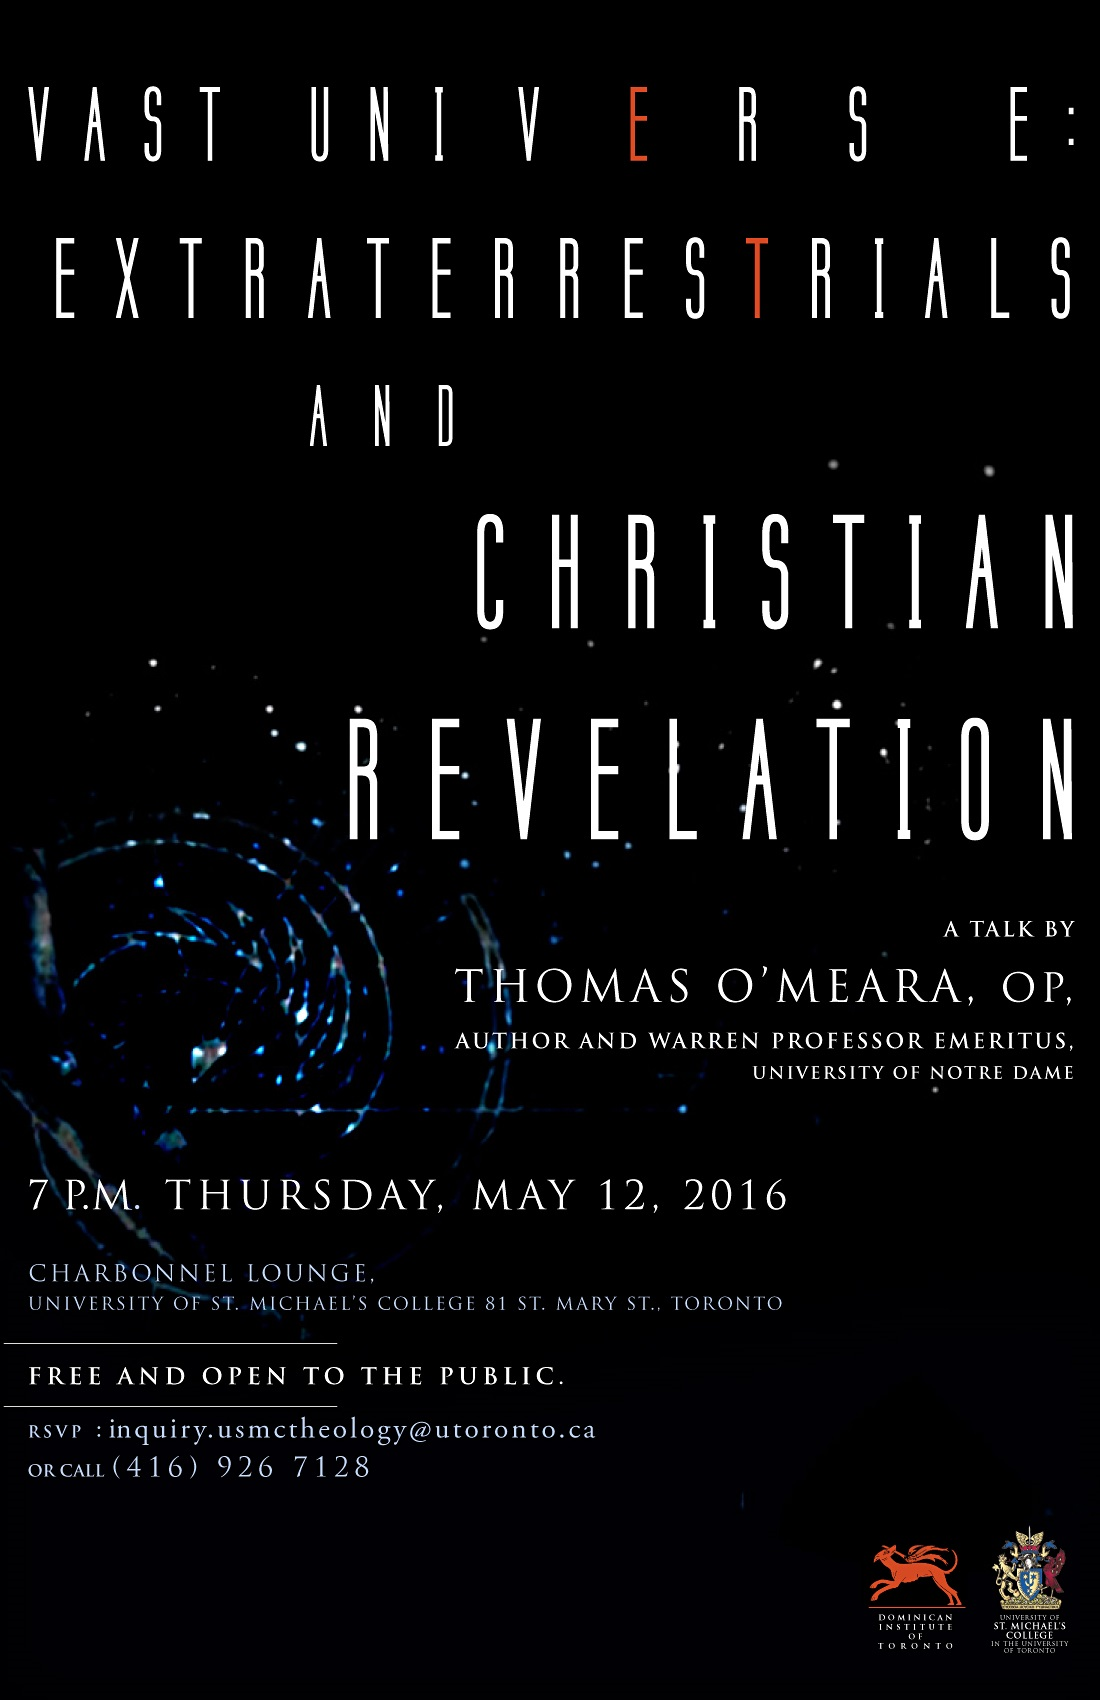 Vast Universe: Extraterrestrials and Christian Revelation, Lecture May 12